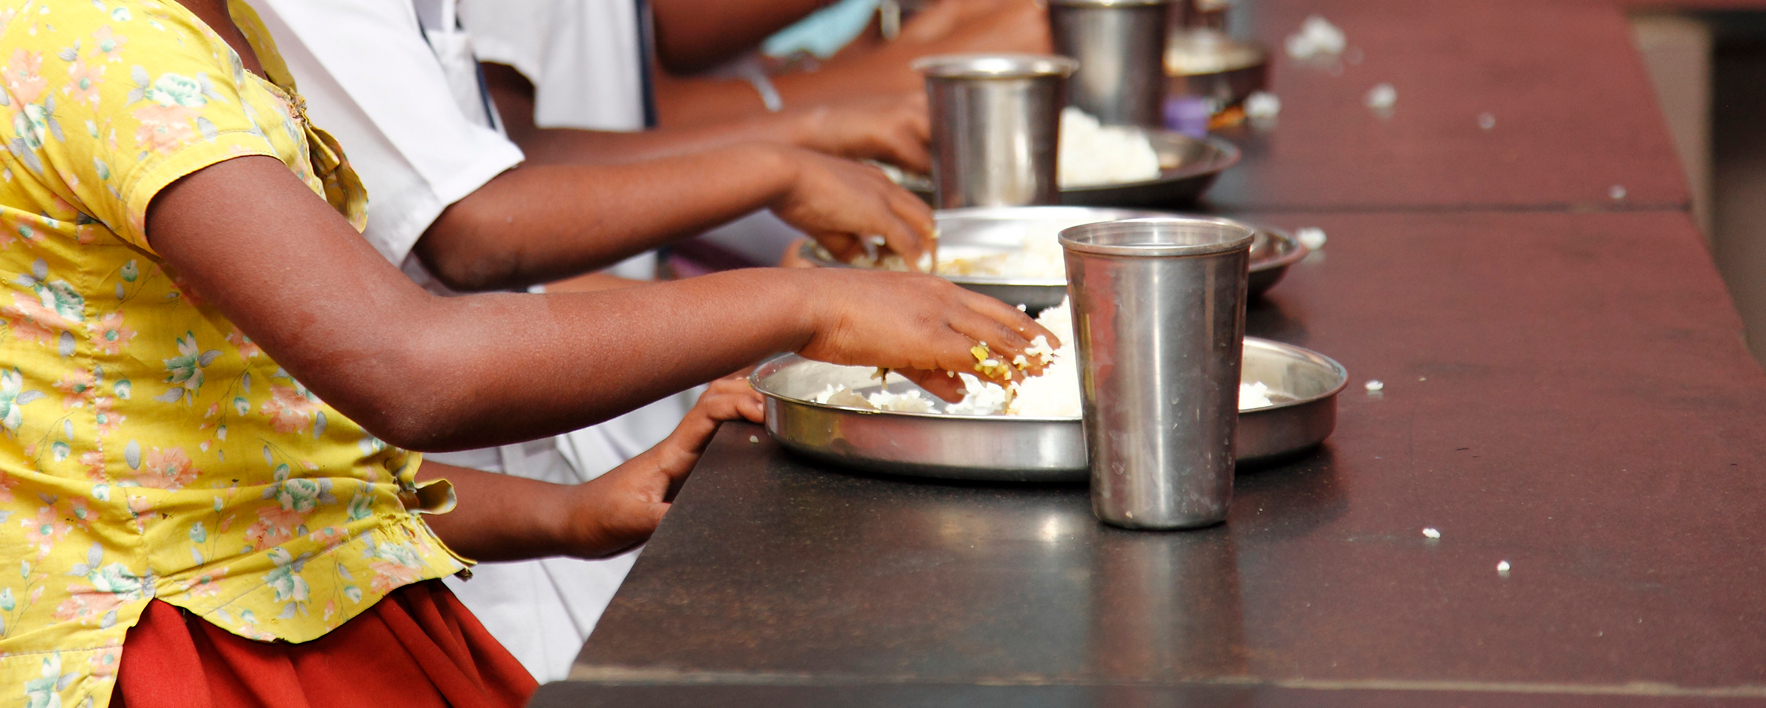 Wasting of Indian children in the recession 'linked to food price spikes'